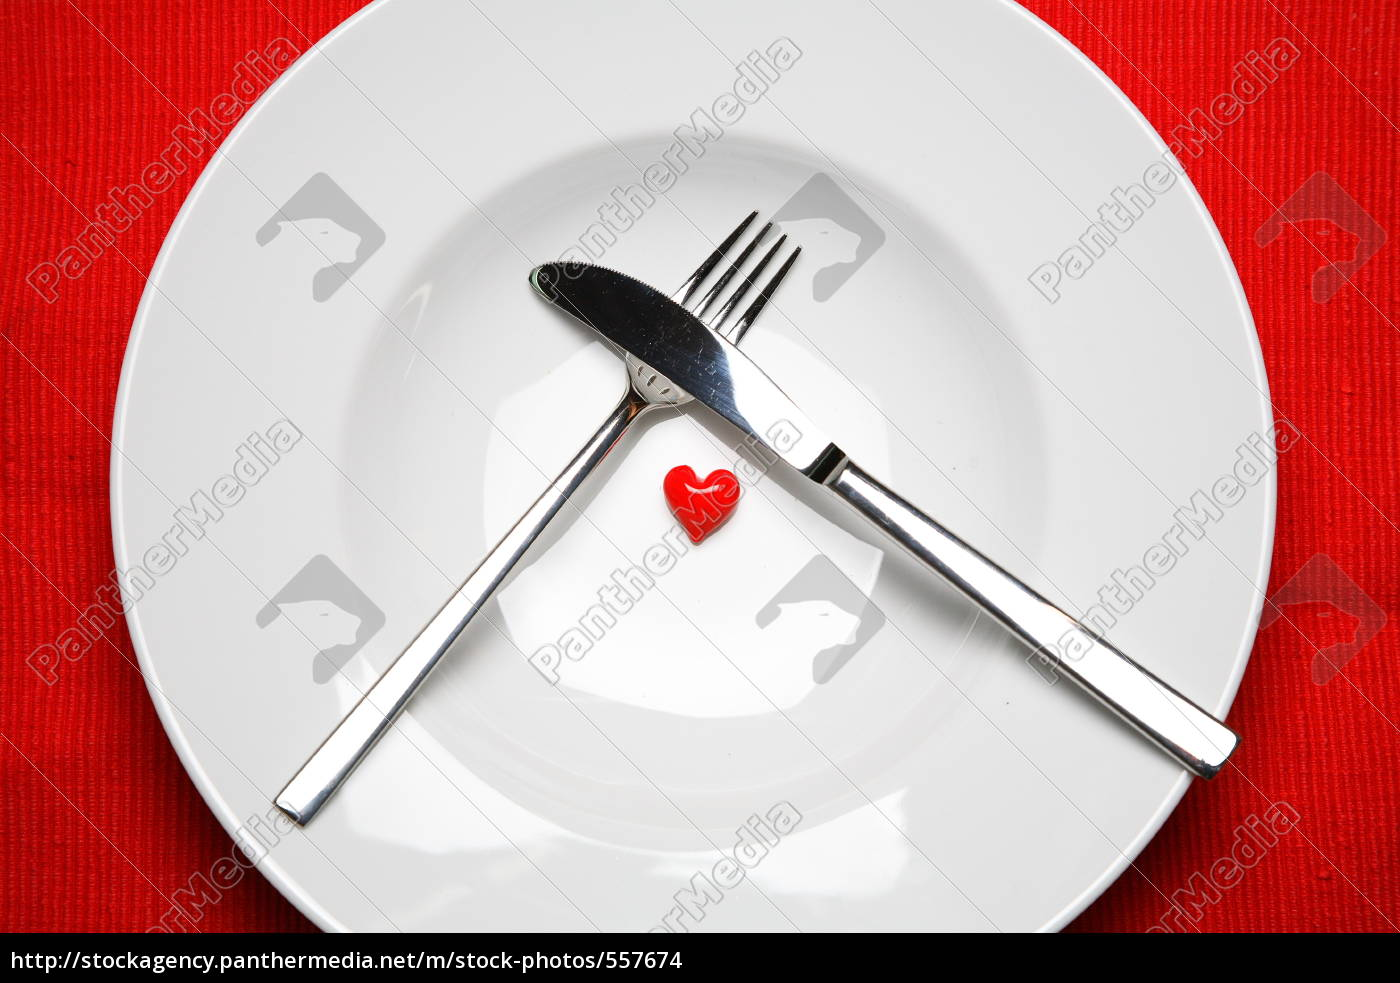 hearts, on, image - 557674